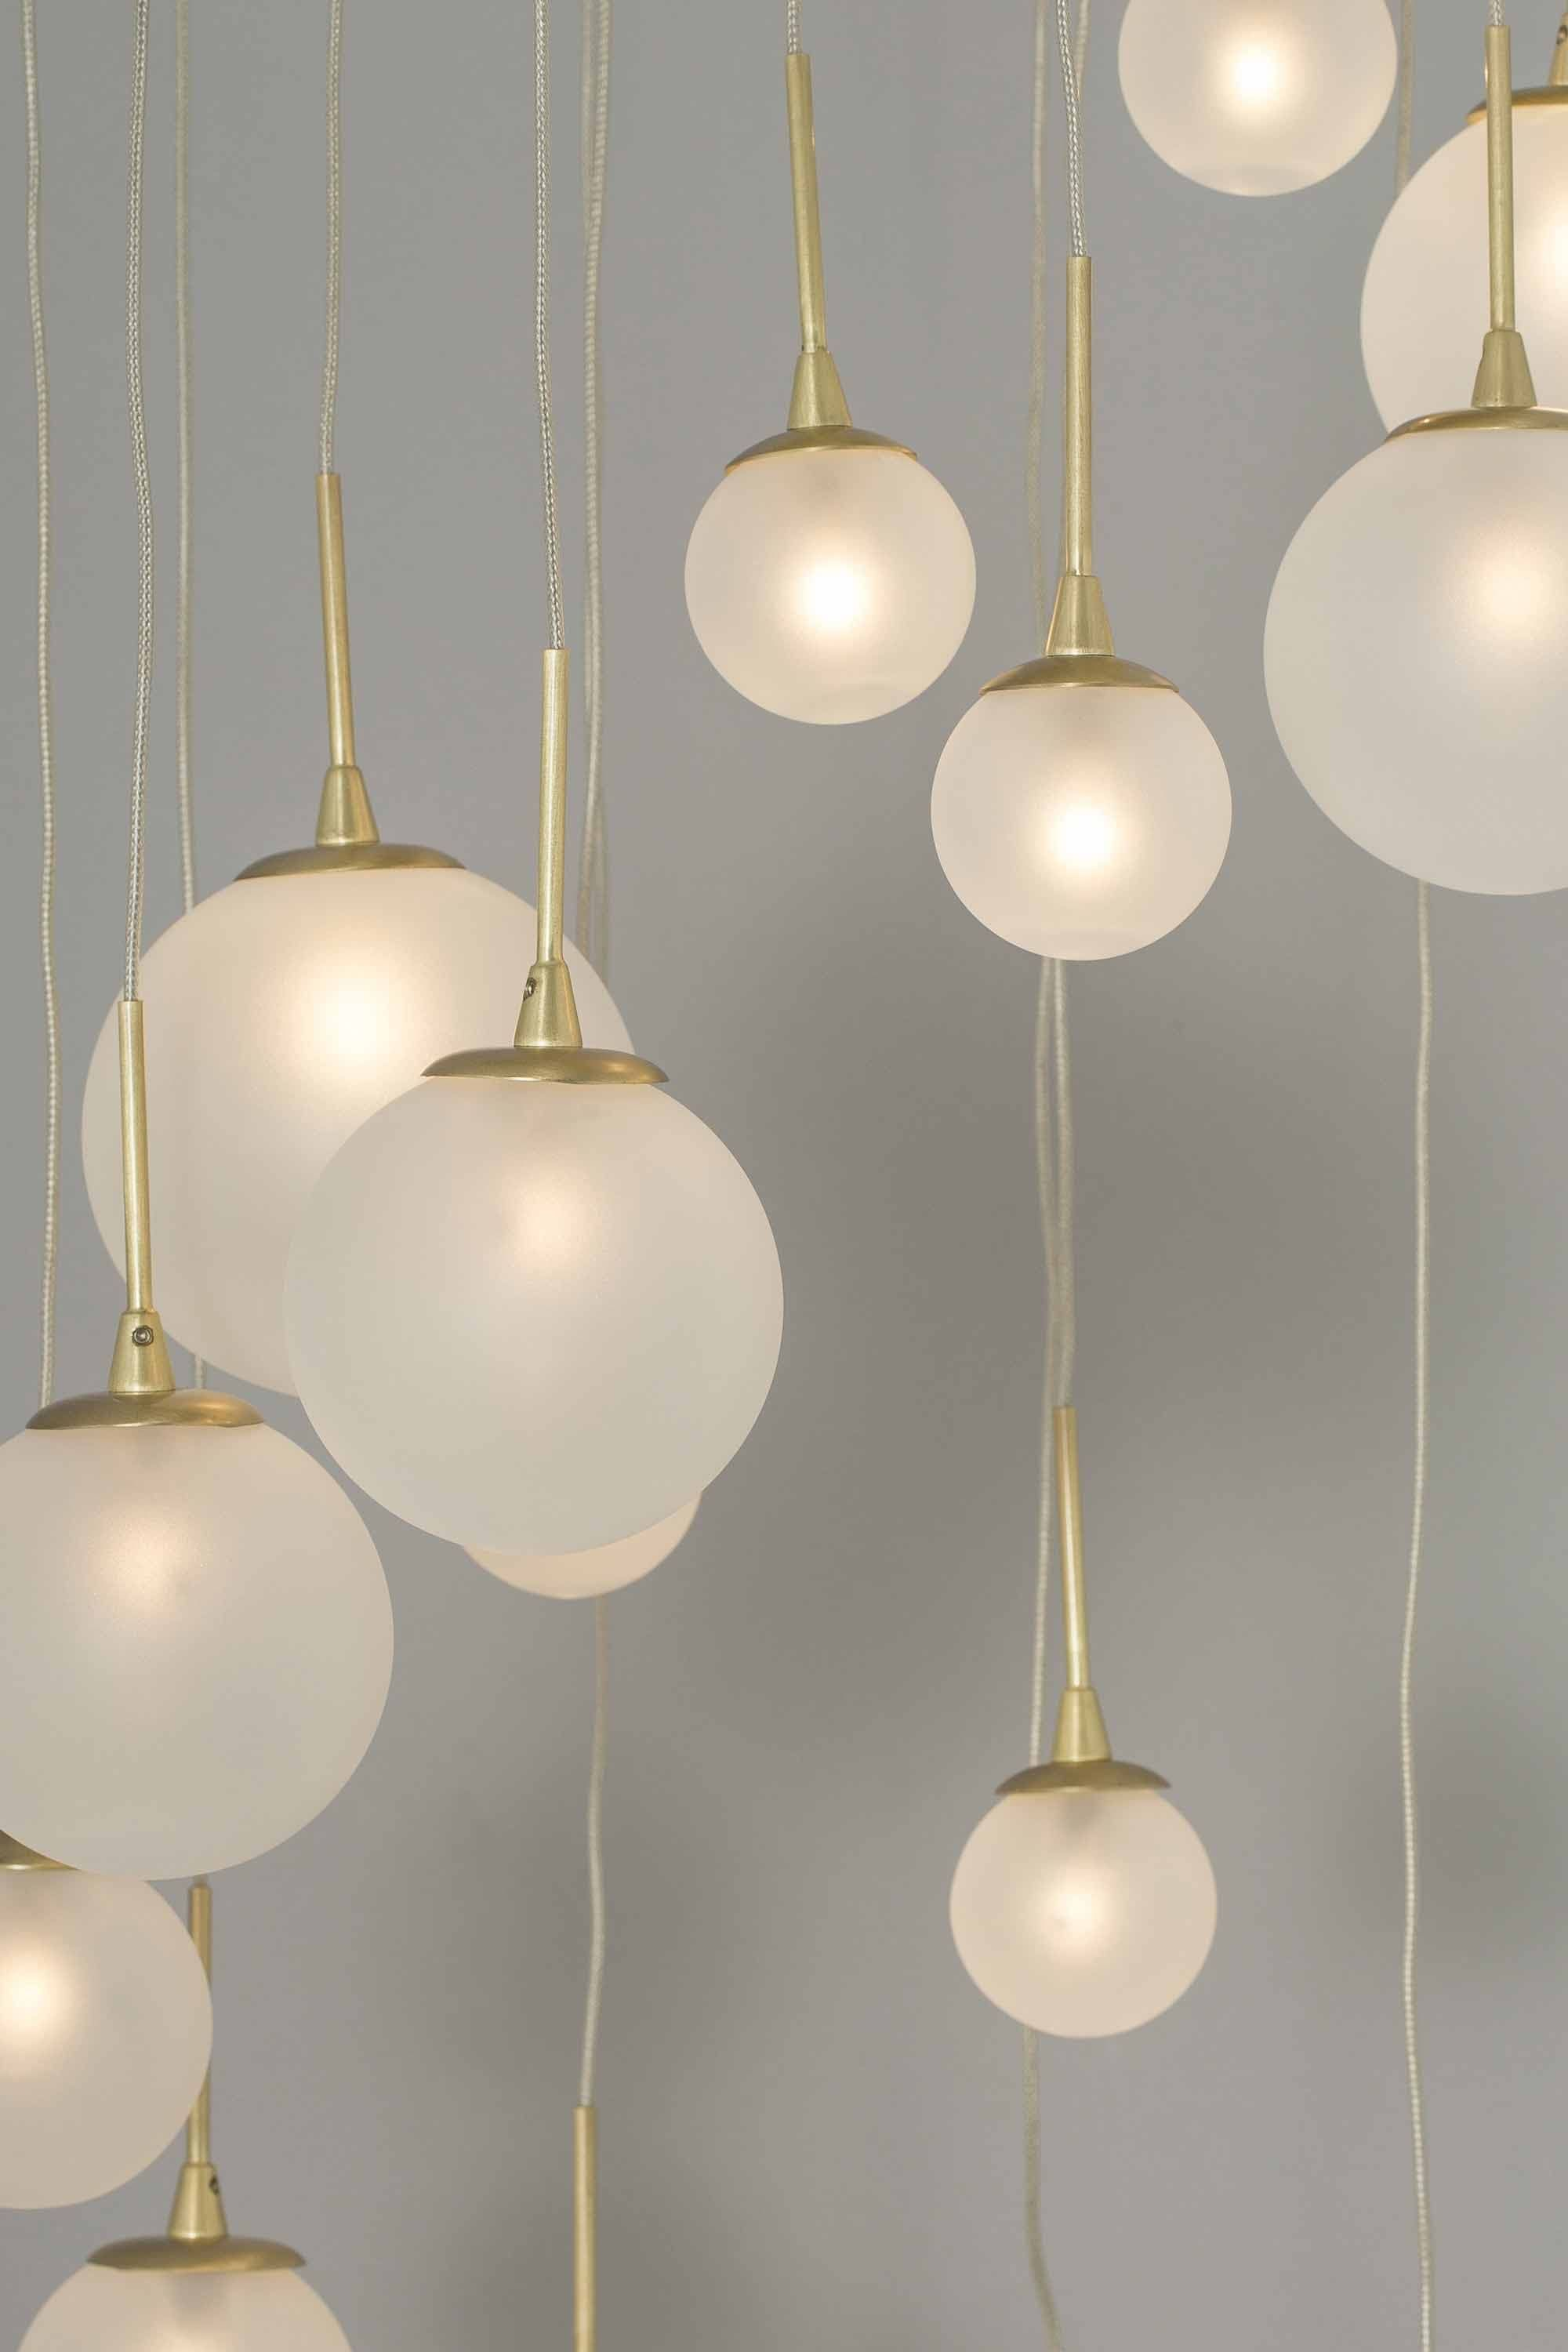 Kolding ball cluster ceiling light bhs kitchen pinterest kolding ball cluster ceiling light bhs mozeypictures Image collections